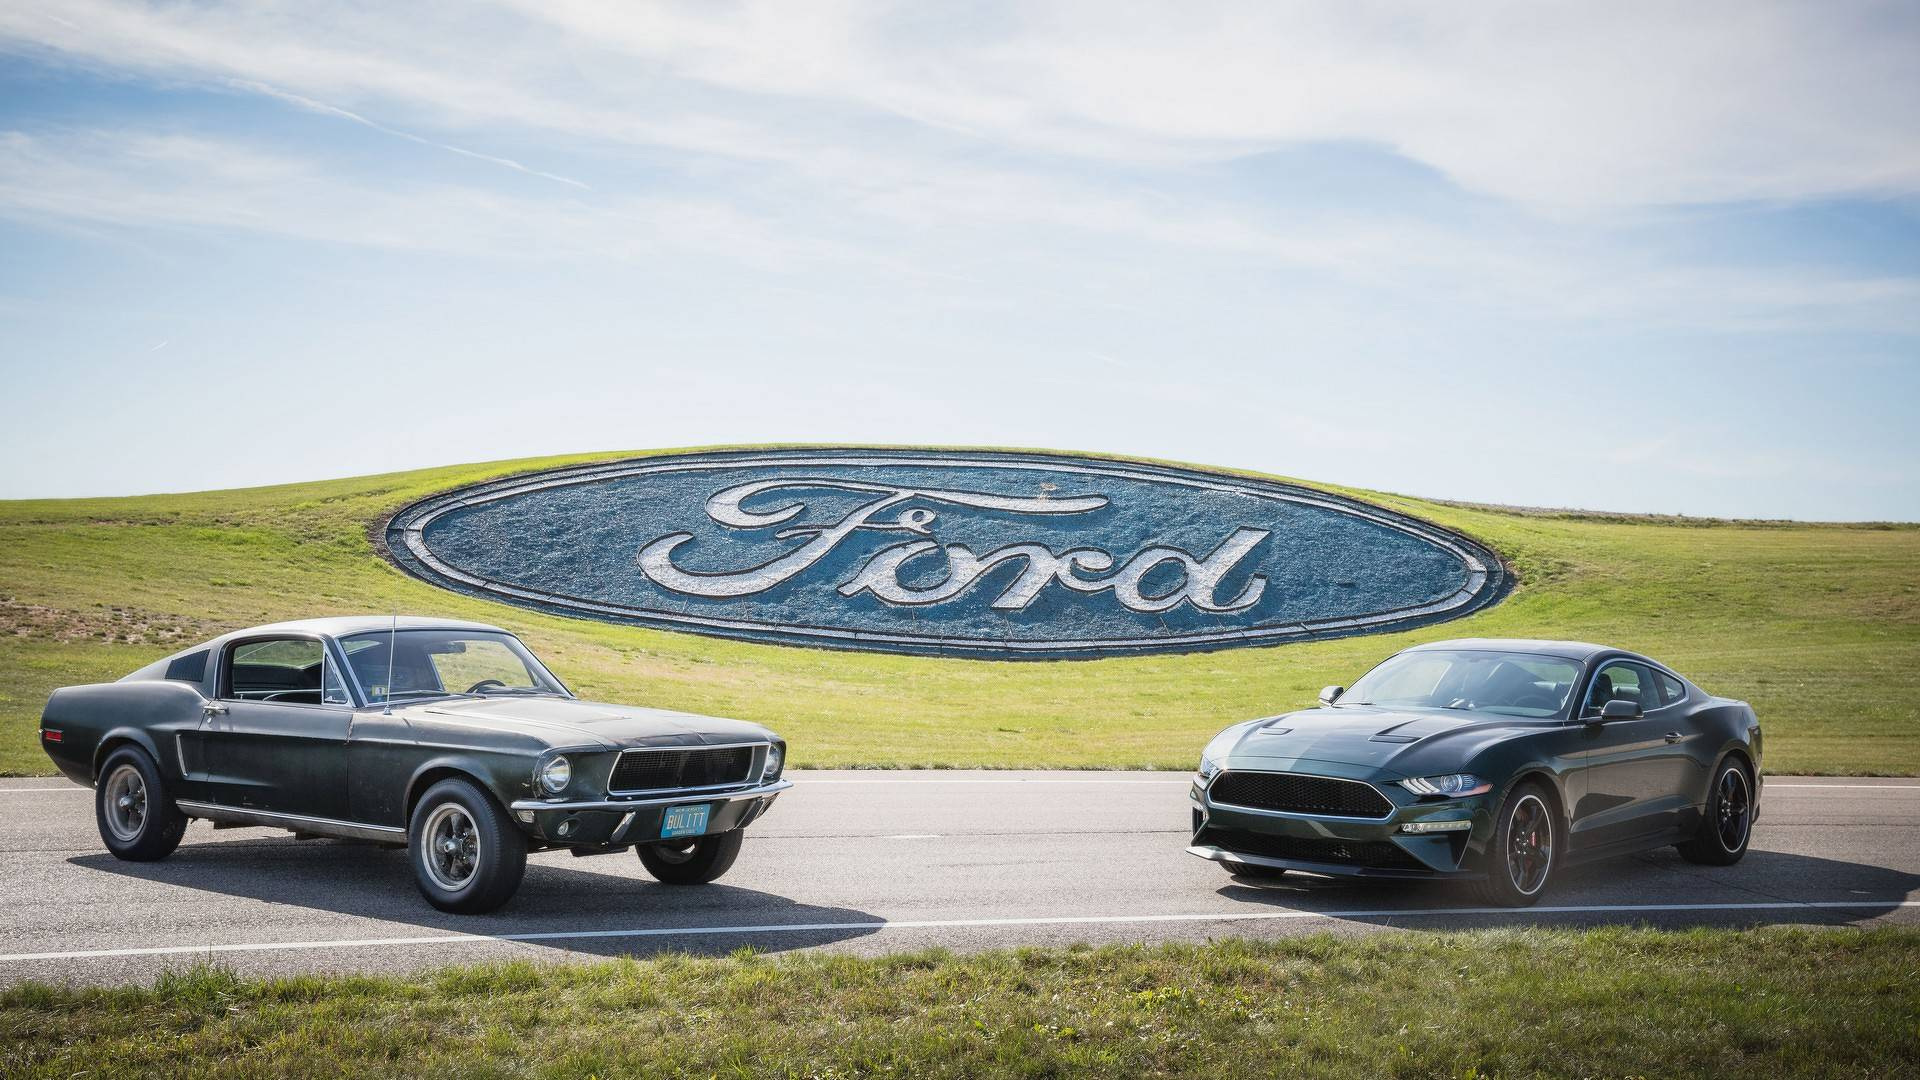 2019 Ford Mustang Getting More Expensive, 2019 Chevrolet Camaro Getting Cheaper - autoevolution